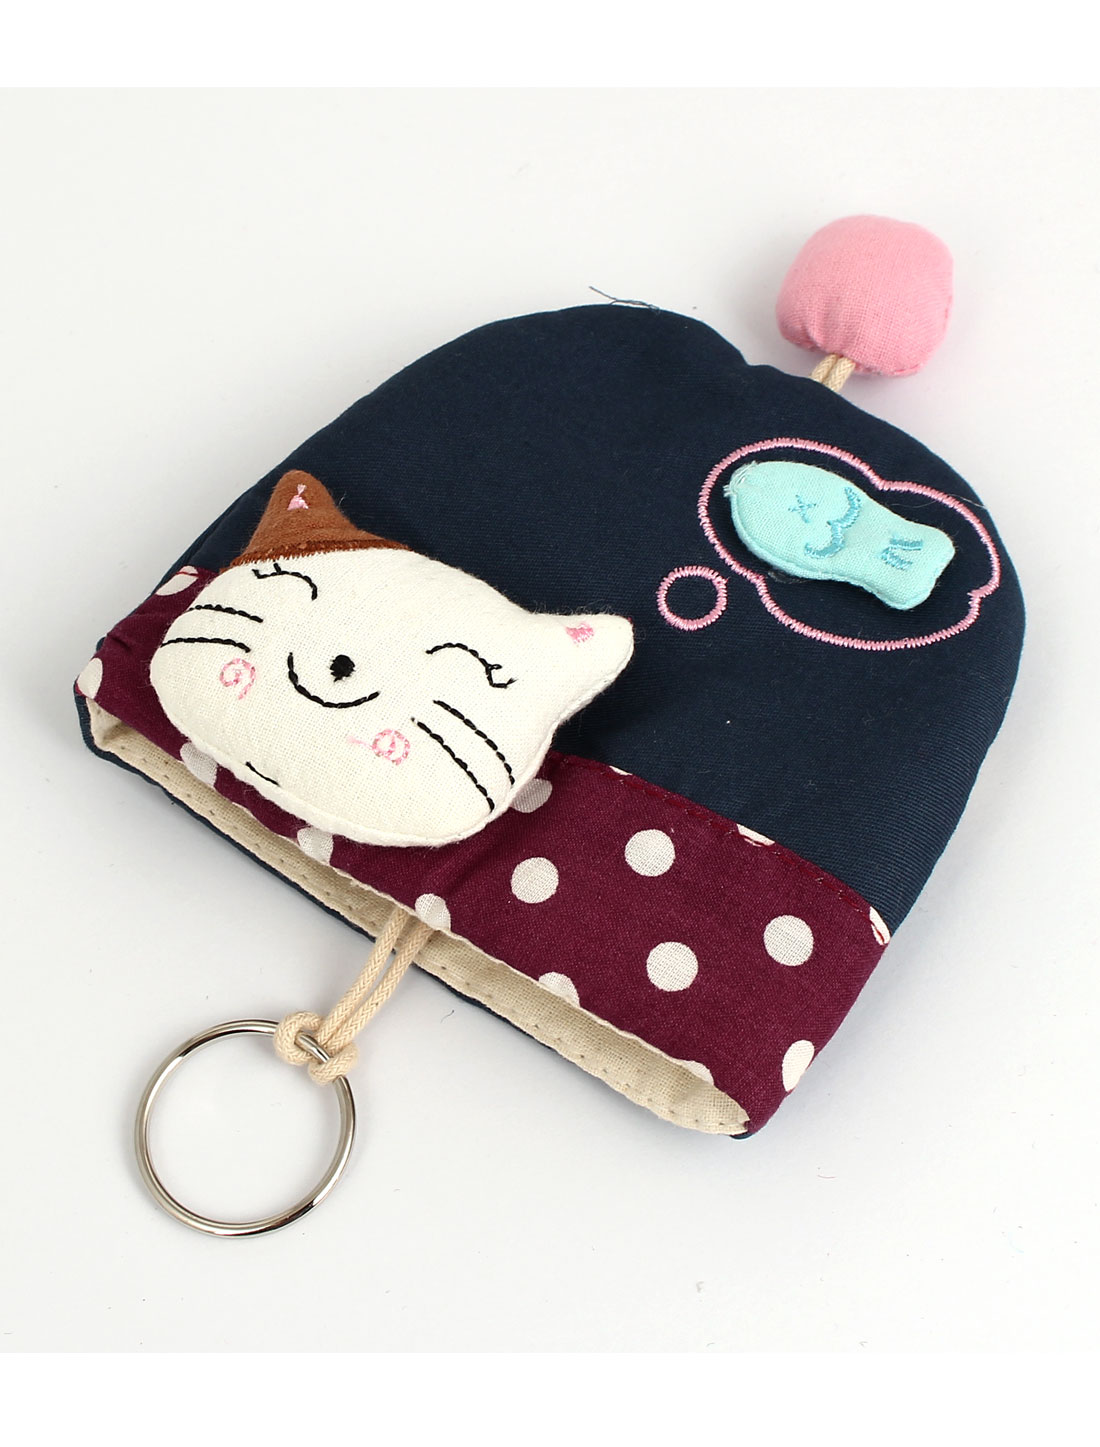 Lady Split Ring Strap Cloth Smile Cat Decor Zip Up Coin Key Purse Bag Wallet Pouch Dark Blue